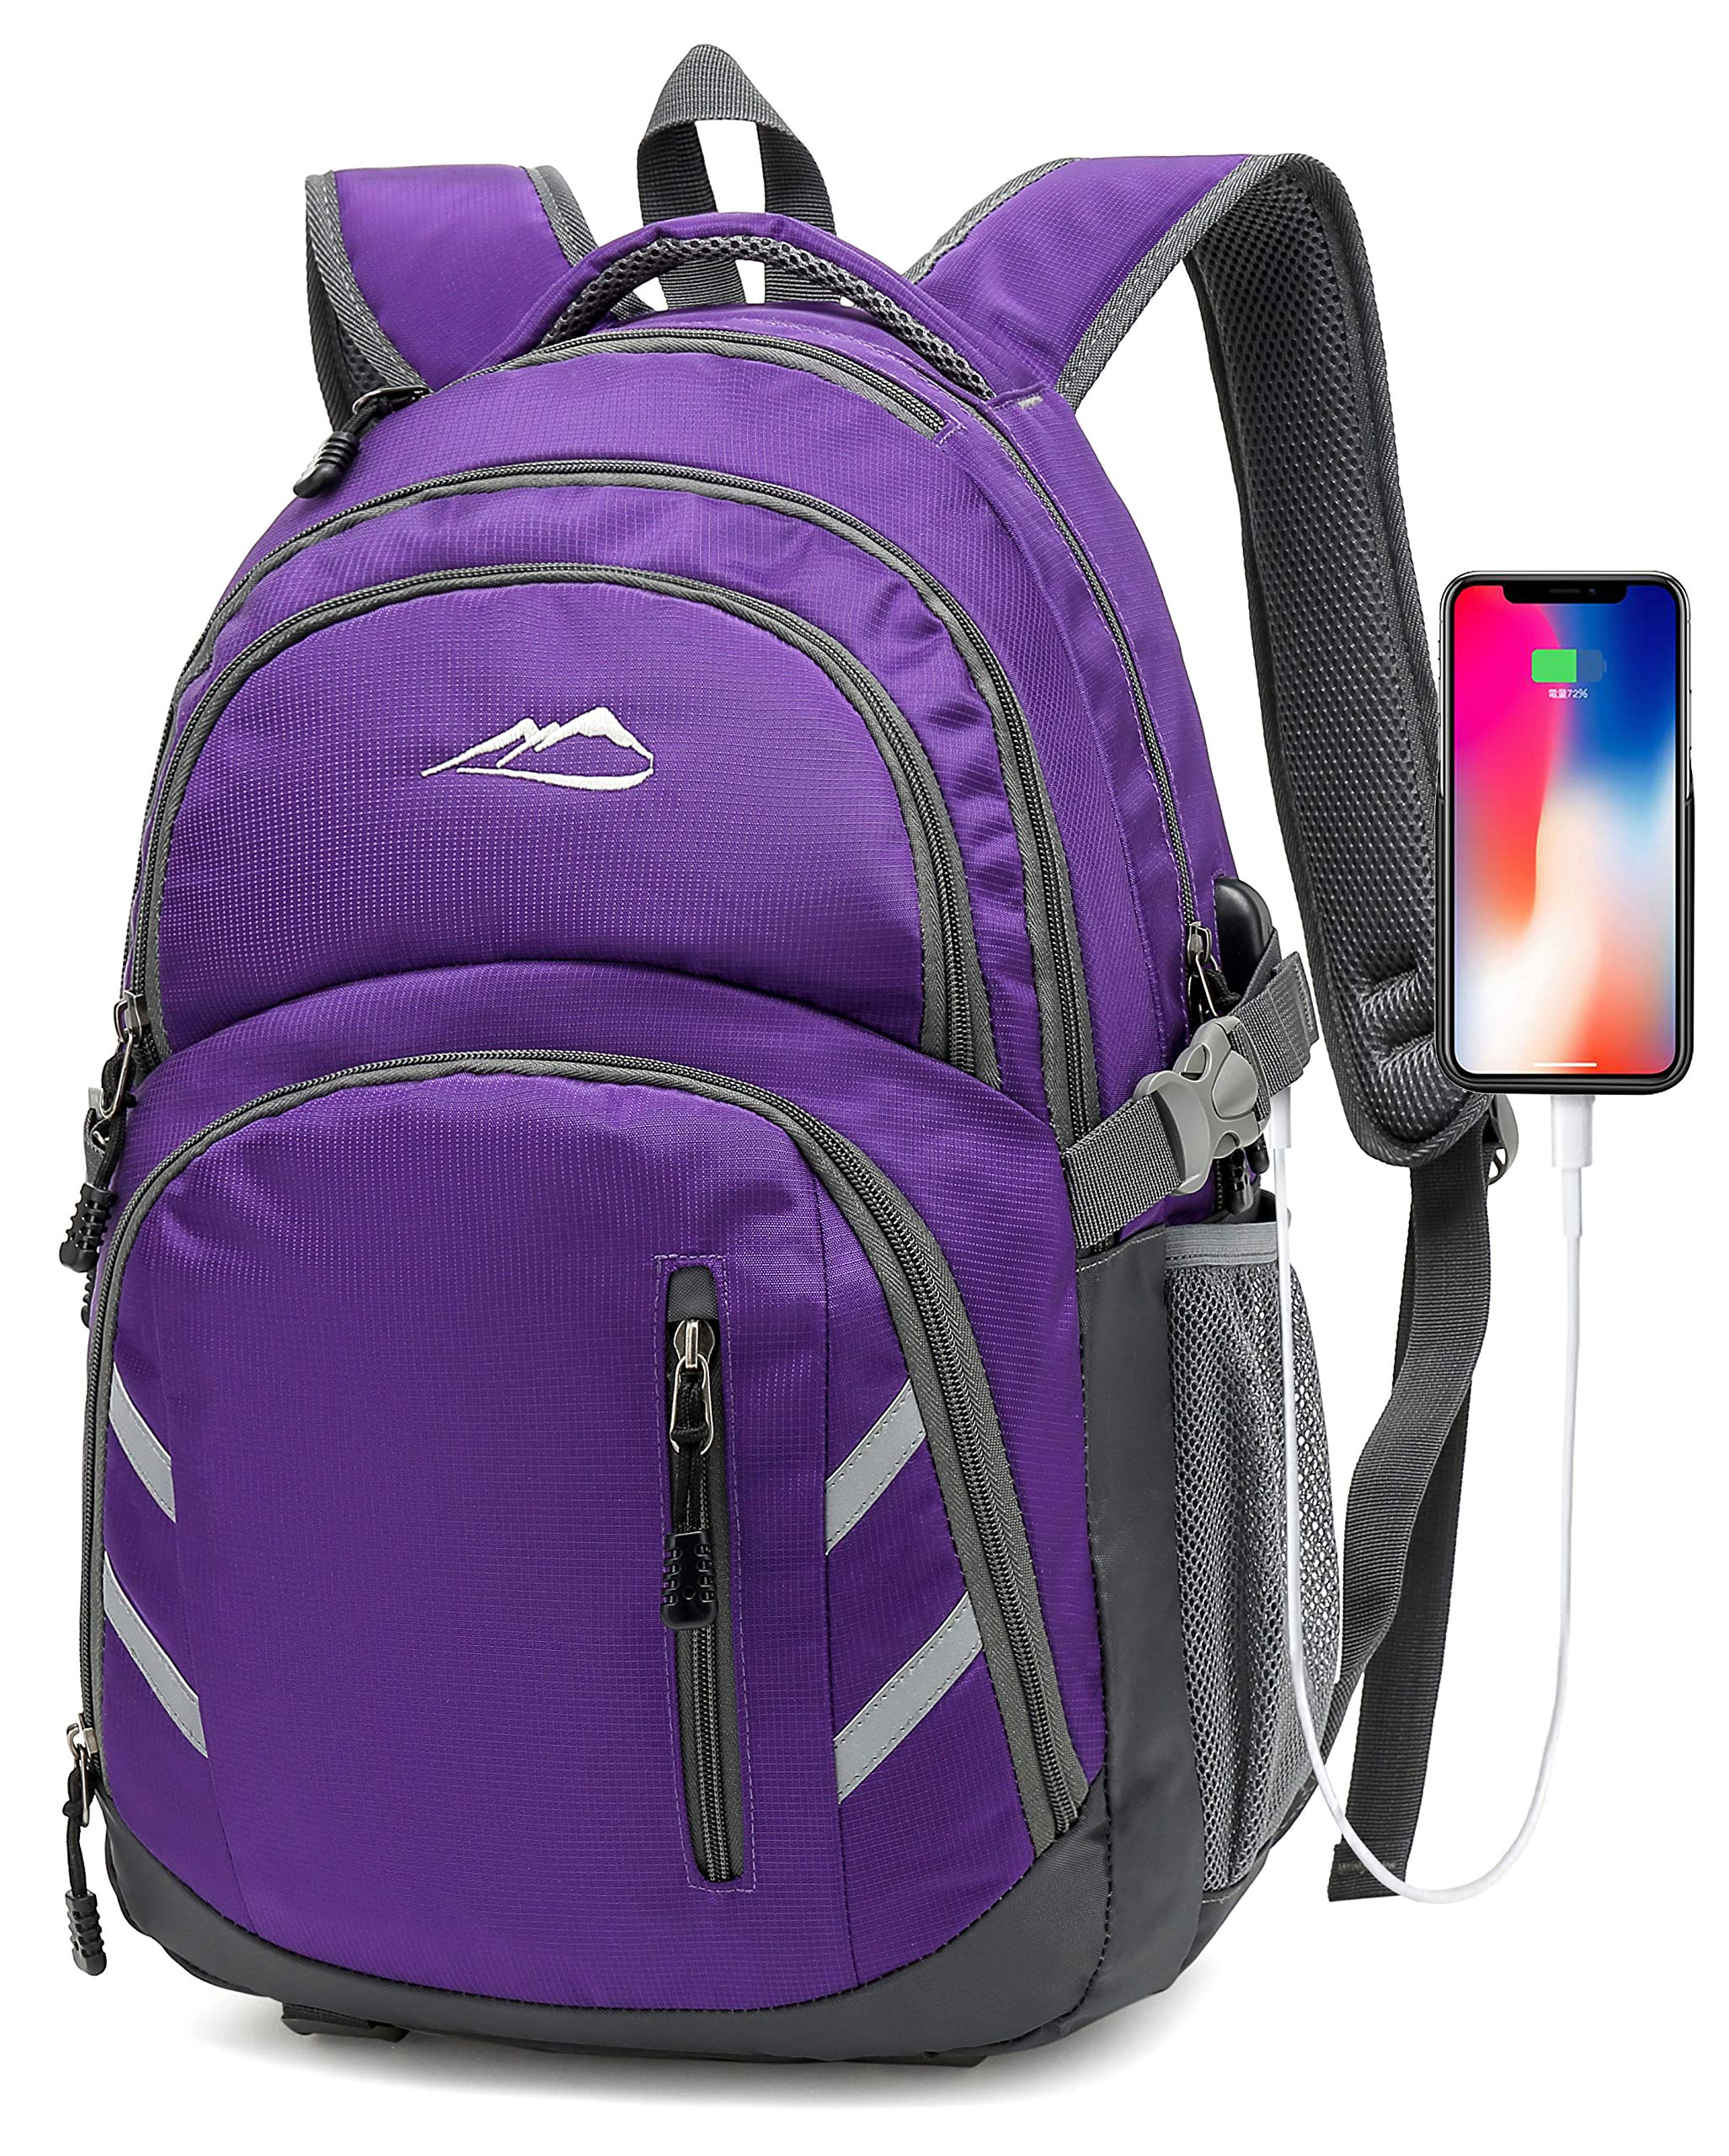 Backpack For School College Student Business Travel Bookbag with USB Charging Port (Purple) by Sandsuced